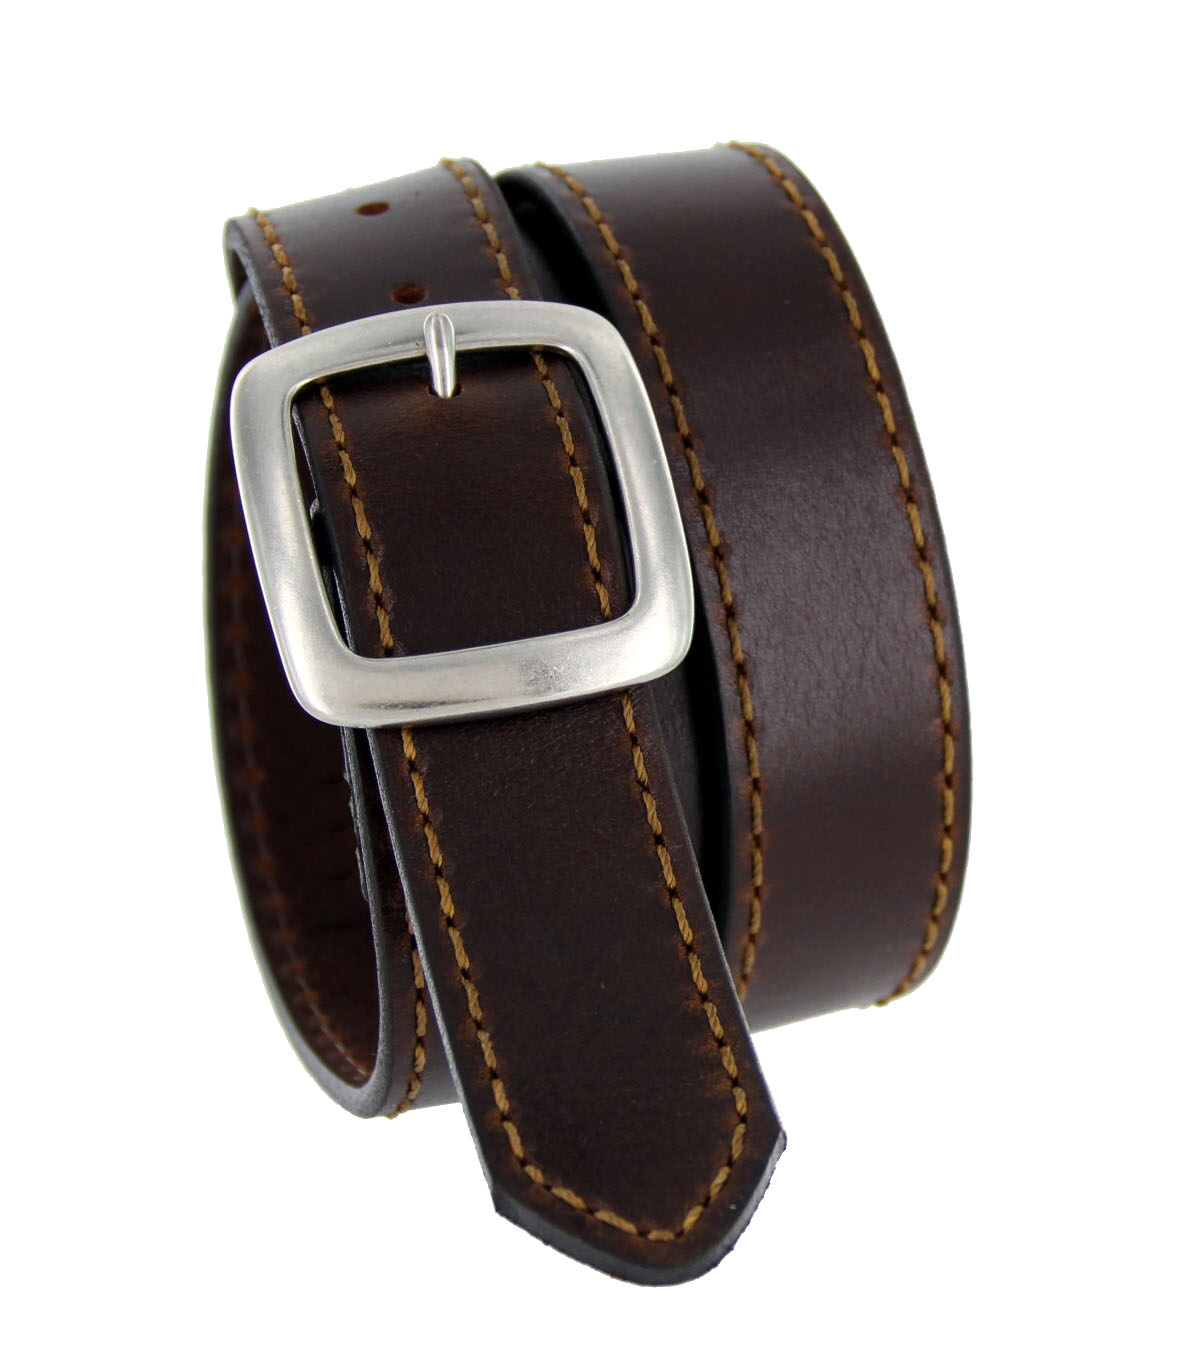 jt241 leather casual jean belt 1 3 8 quot wide brown